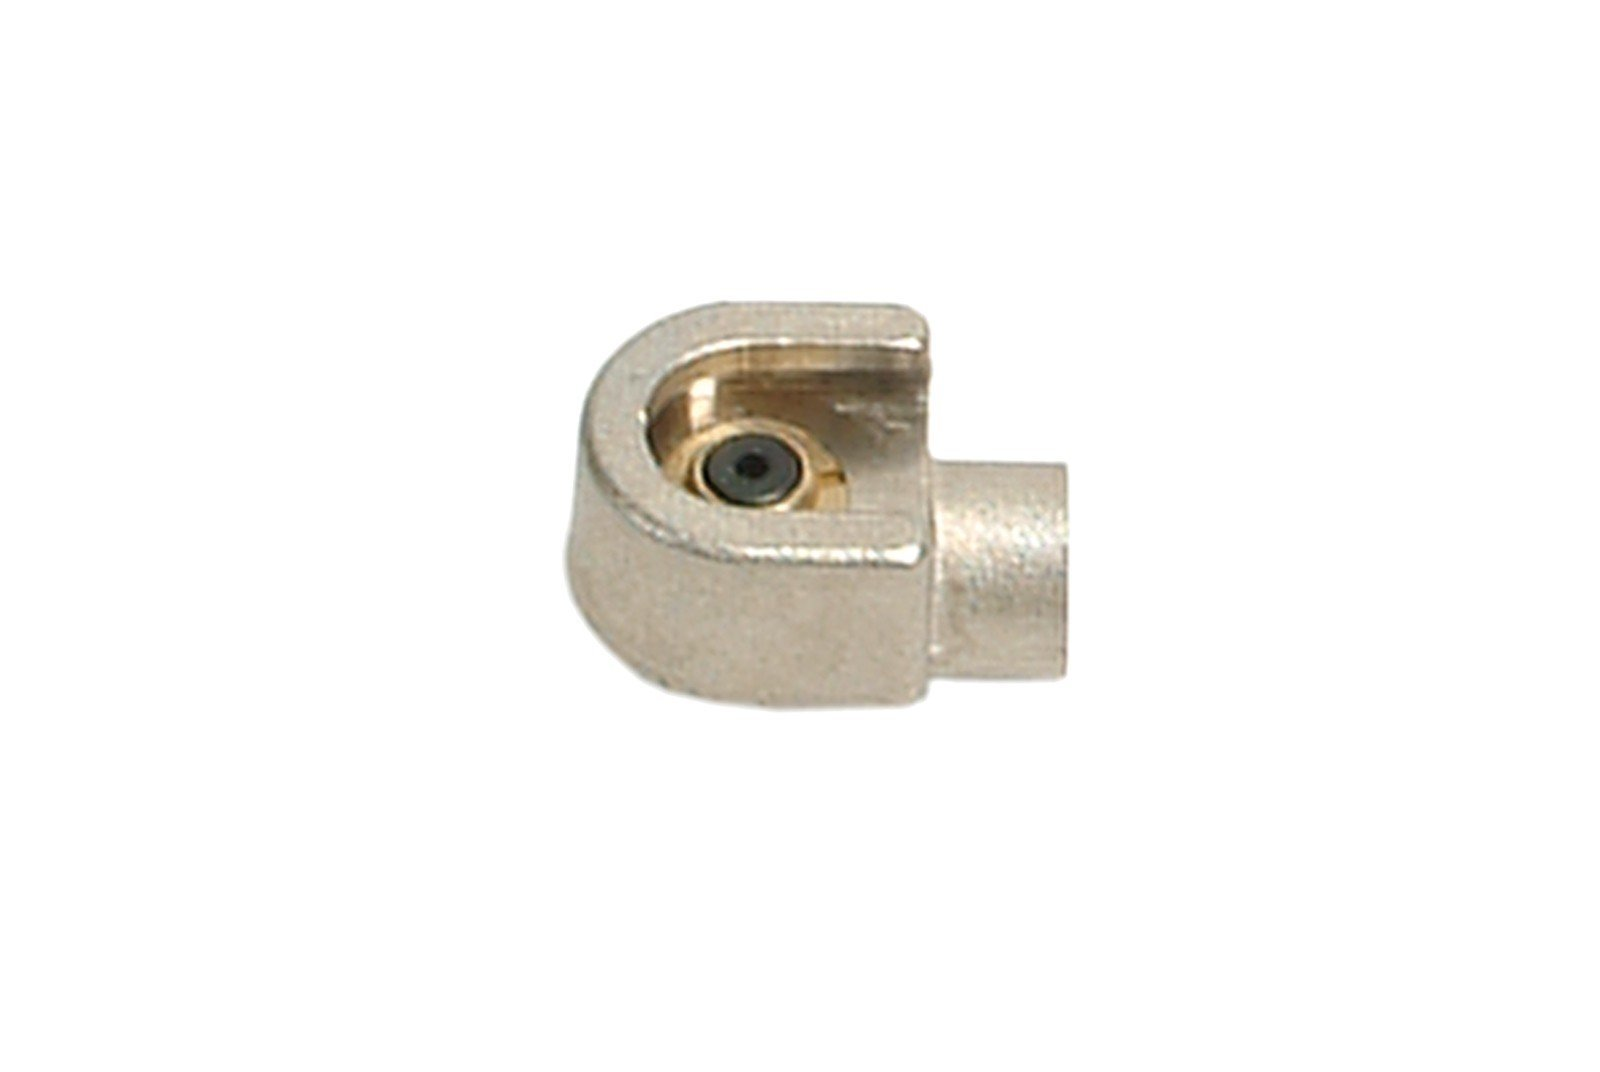 014-1089-000 - Grease coupling-pull for hexagonal heads 15 mm